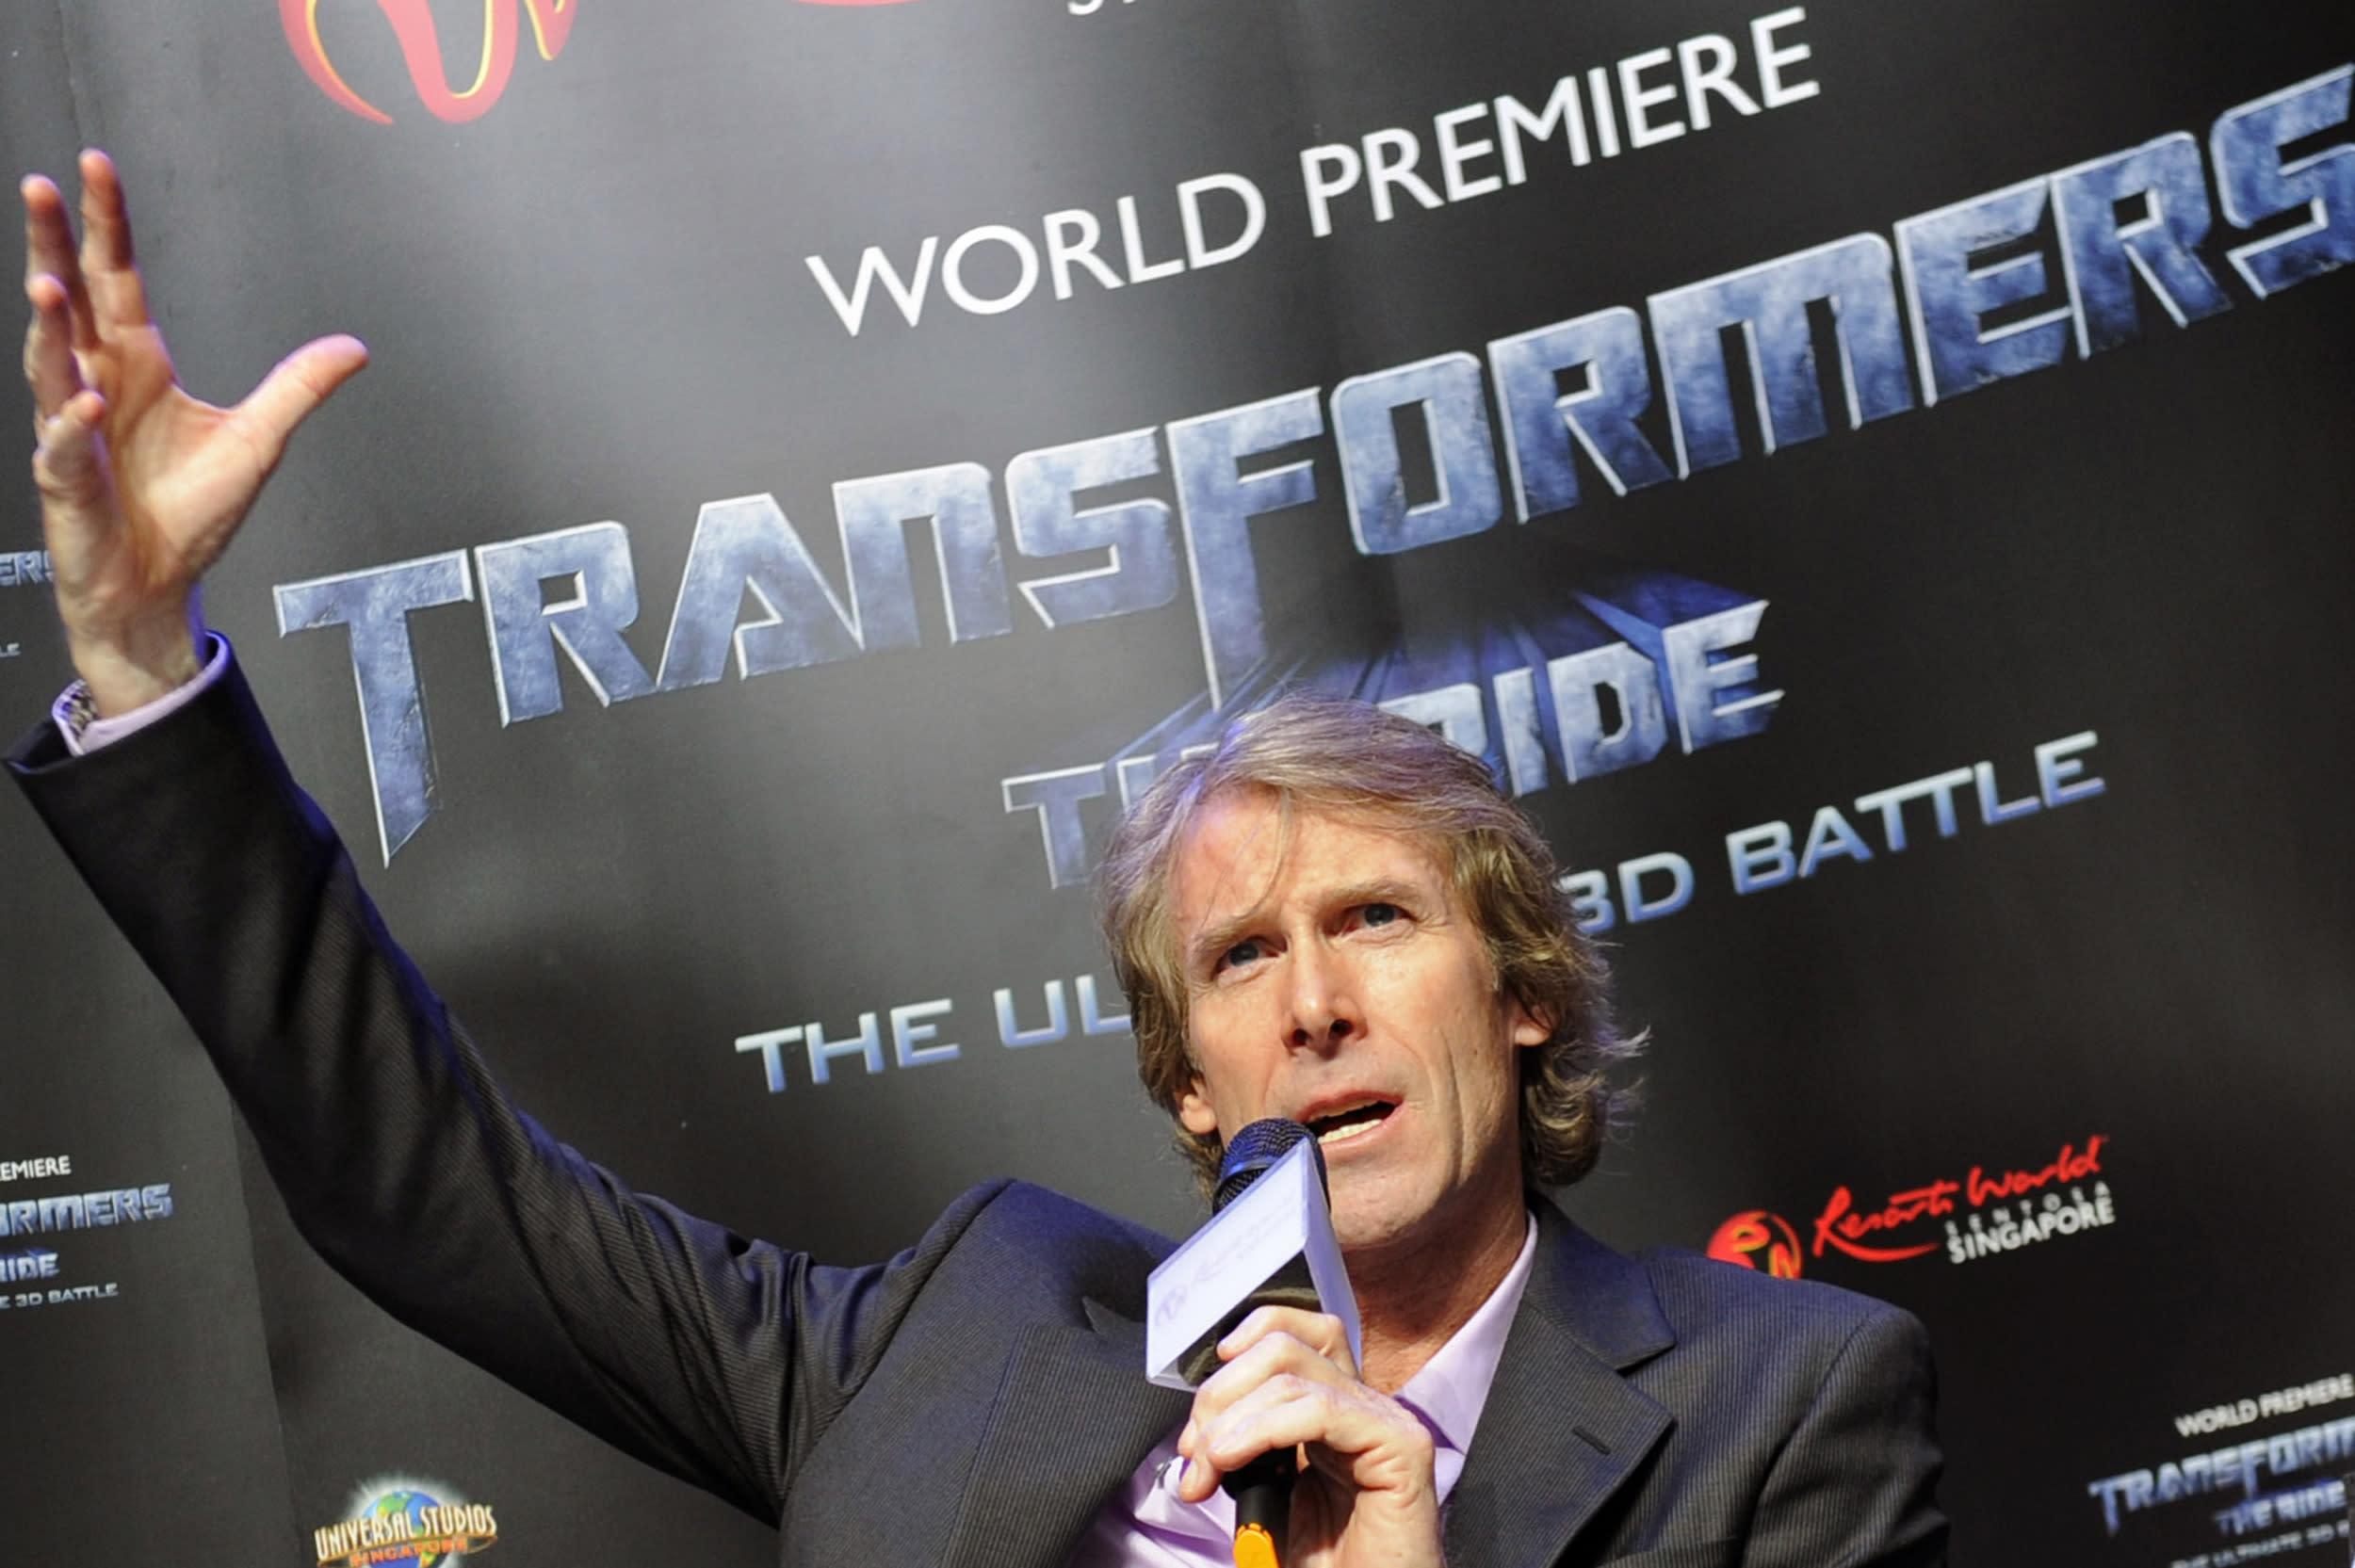 Earnings of $82 million put the Transformers director in the upper-echelons of the big earners. His blockbuster action films haven't always been a big hit with the critics, but have pulled in the crowds, guaranteeing him big money. He took a bit of a hit this year - with his earnings almost halving from a year earlier (when he was the second-highest paid celebrity). However, Transformers 4 should have him back on top next year.